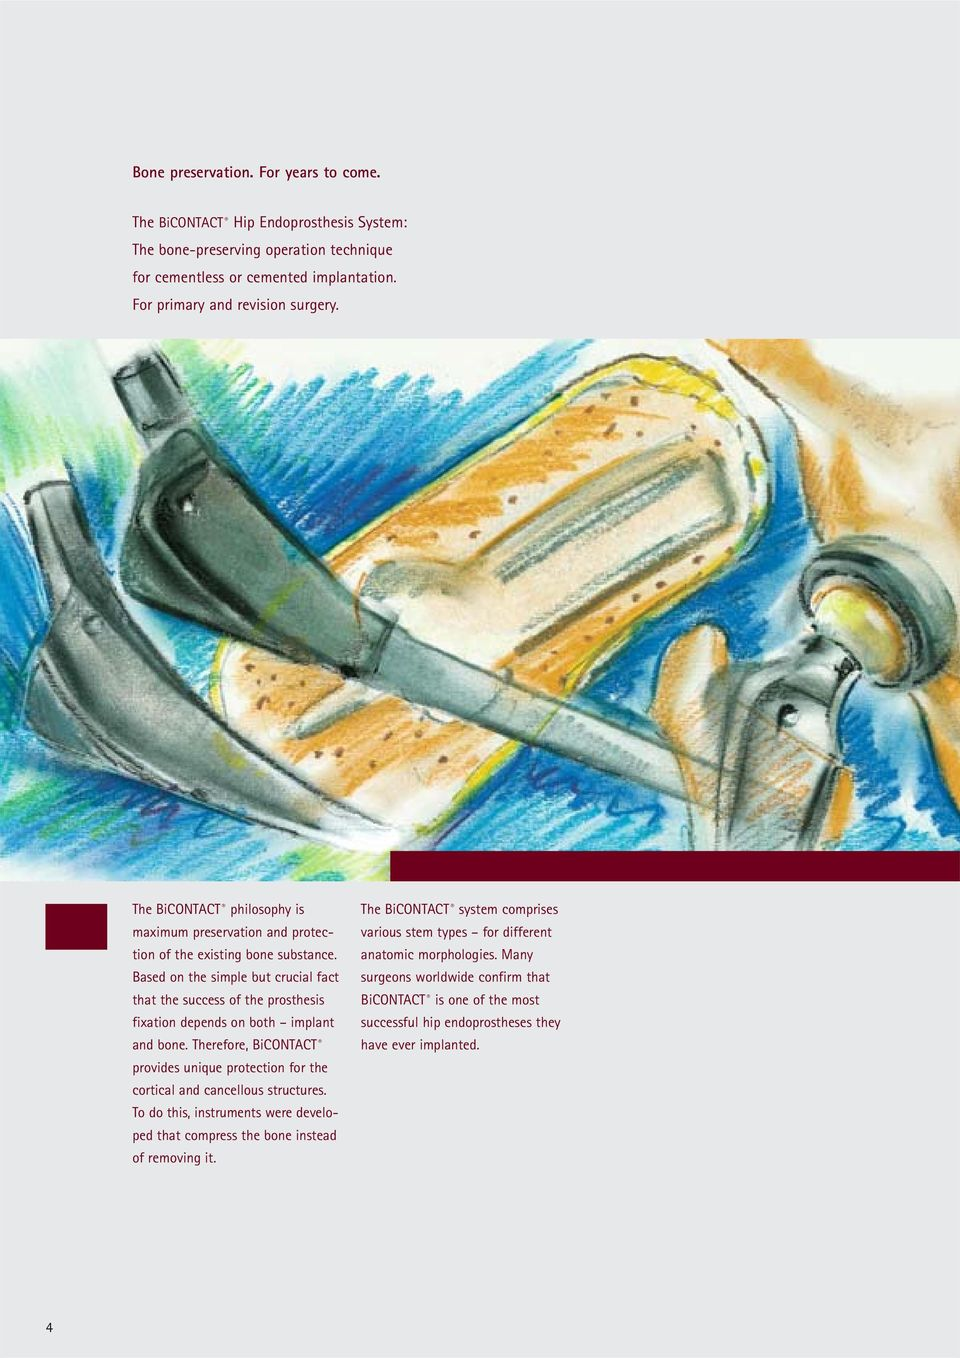 Based on the simple but crucial fact that the success of the prosthesis fixation depends on both implant and bone.